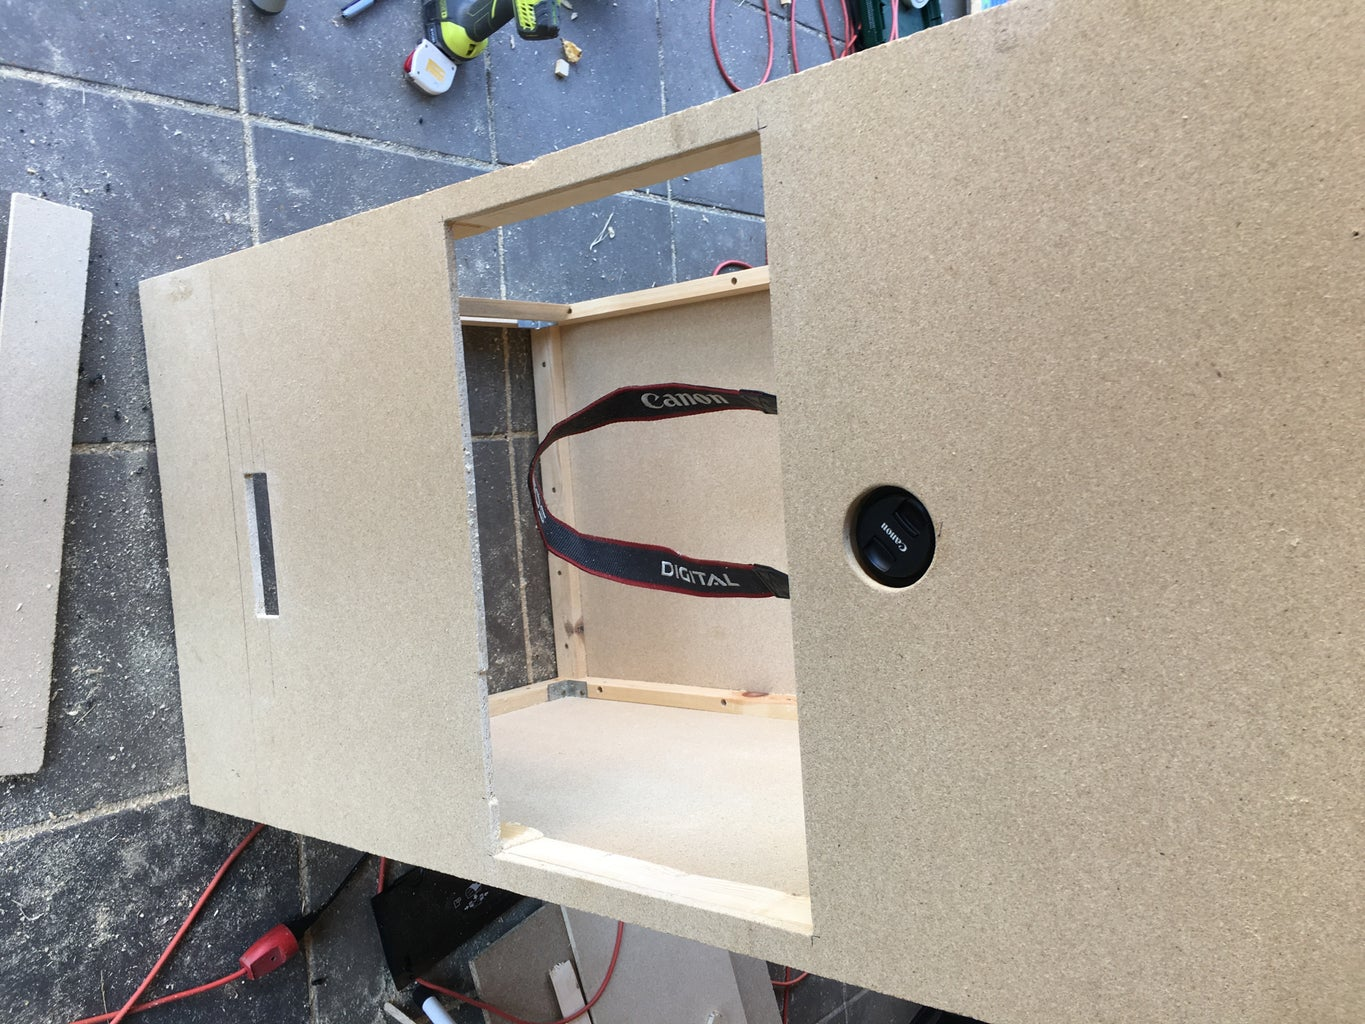 Add Supports and Fasteners for the Electronics.